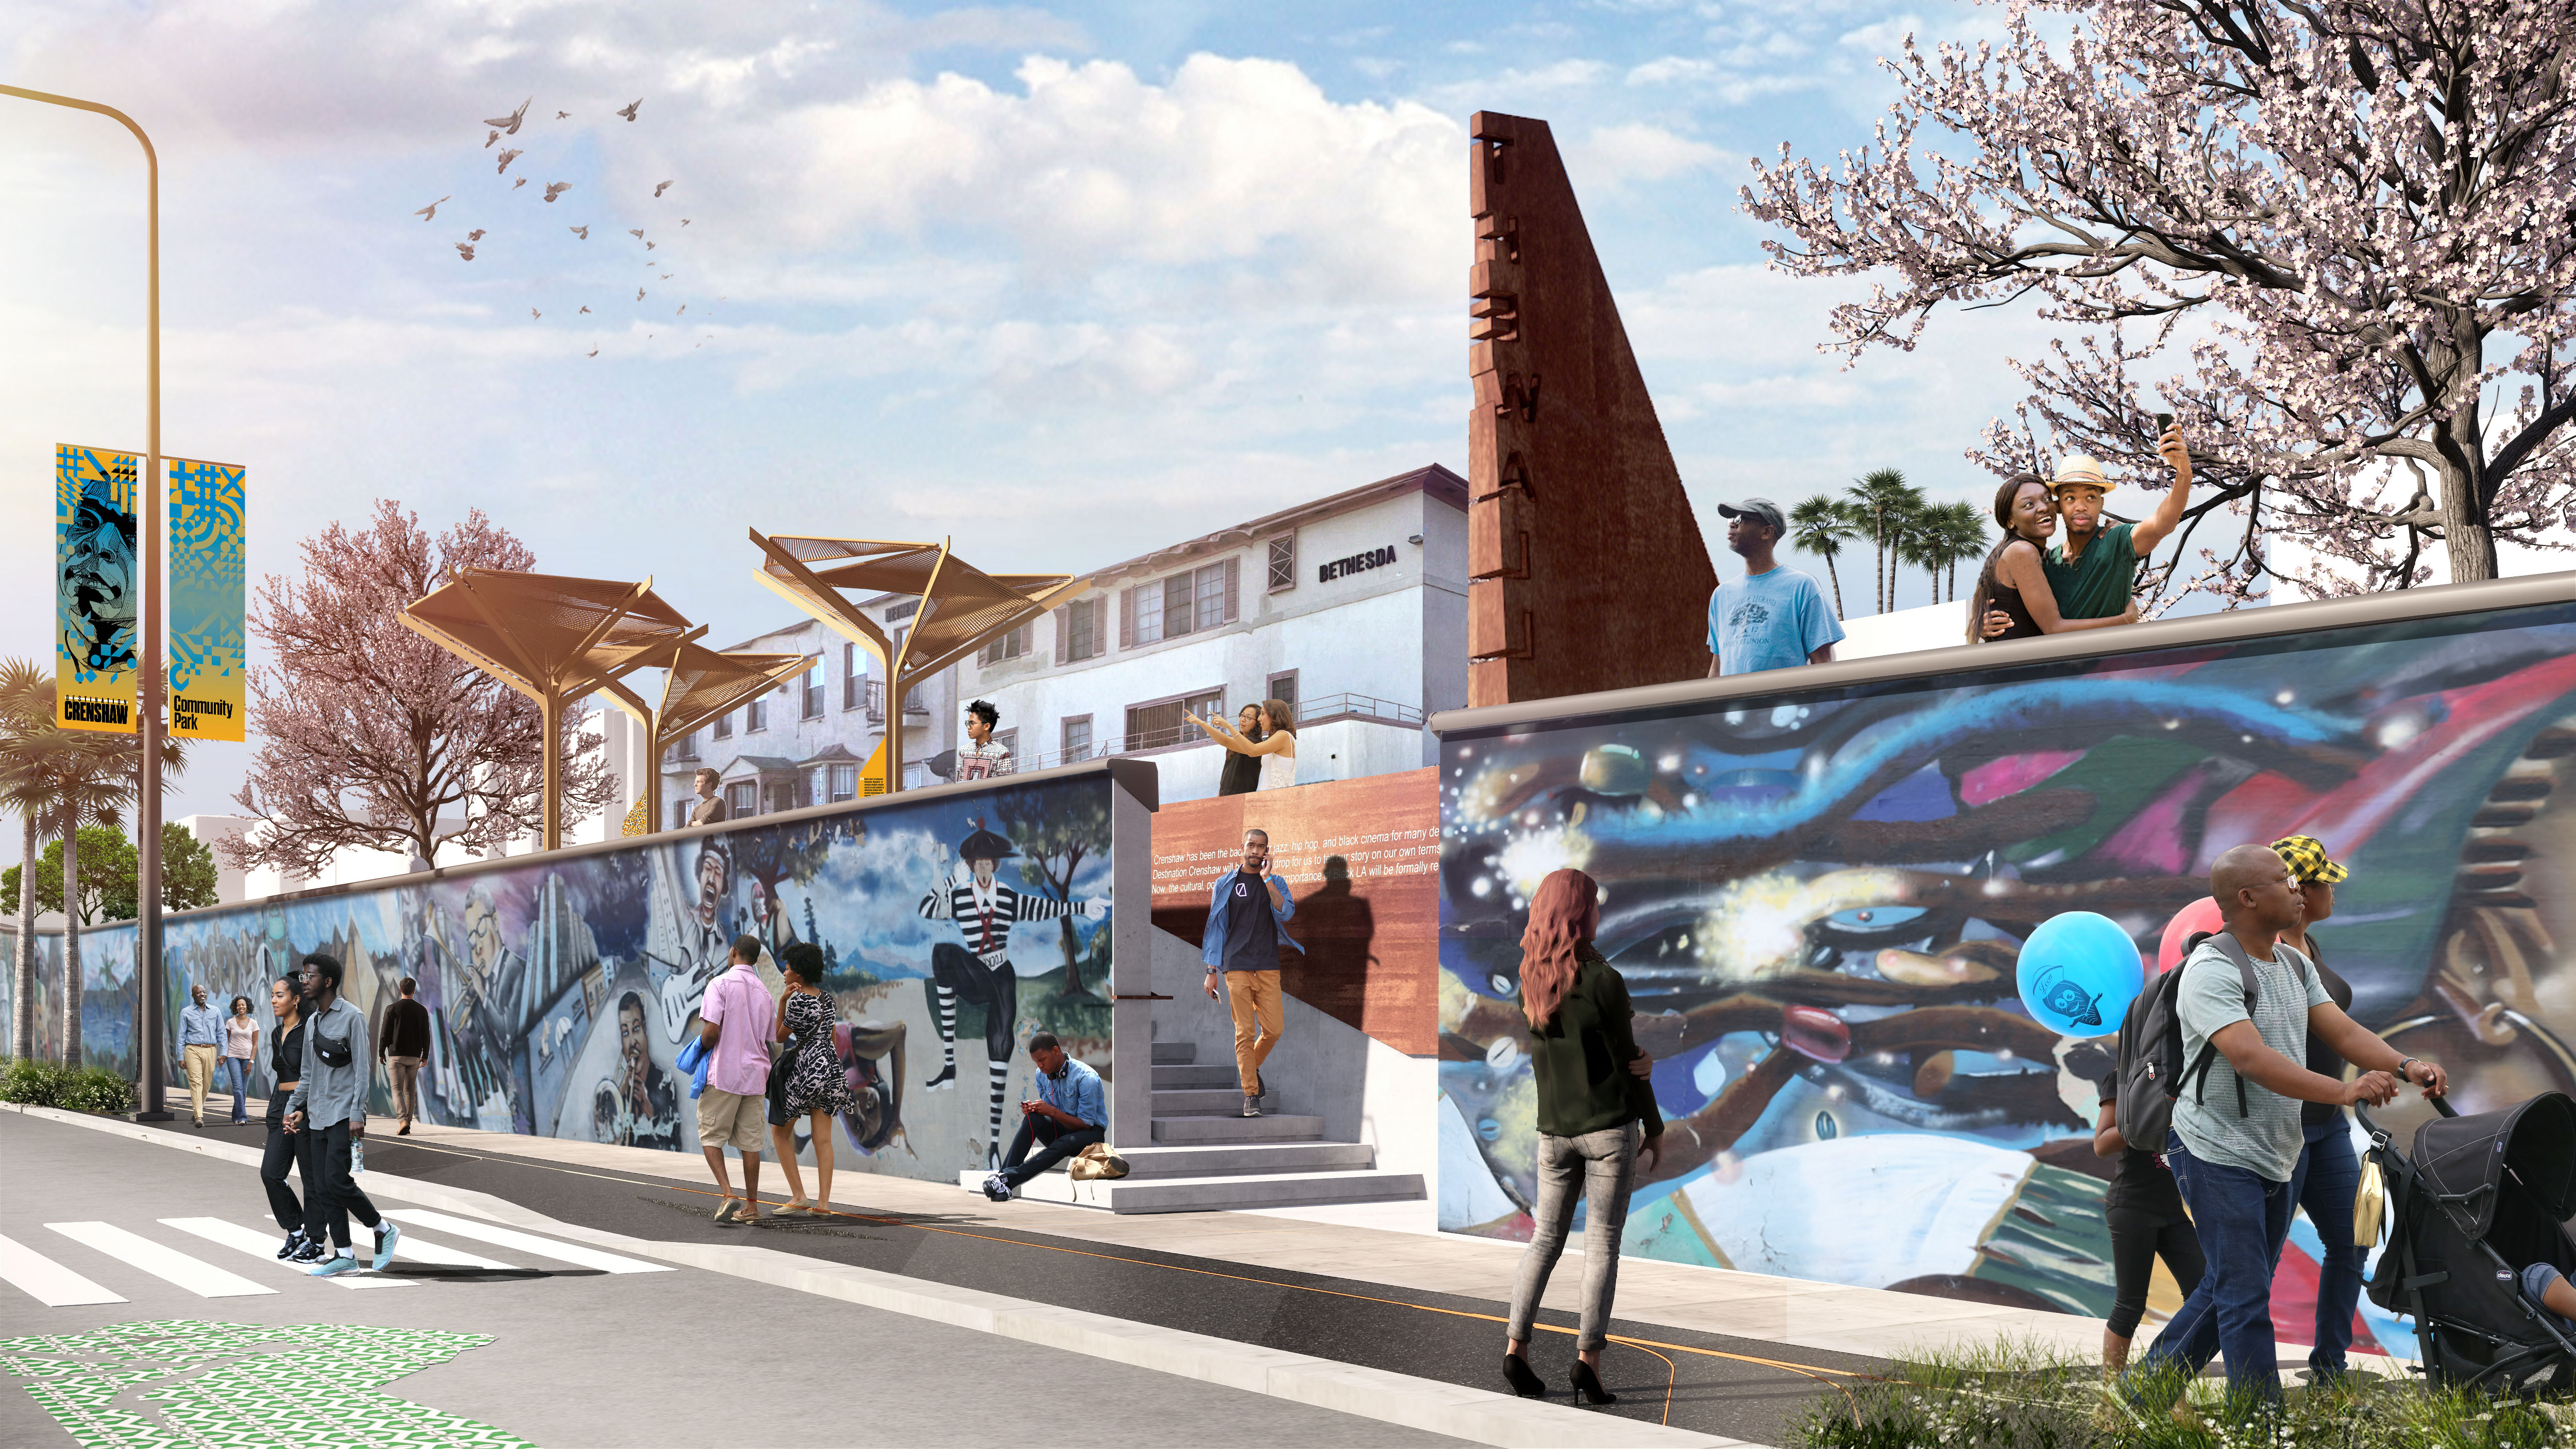 First look at Destination Crenshaw, an open-air 'museum' set to run along the Crenshaw Line